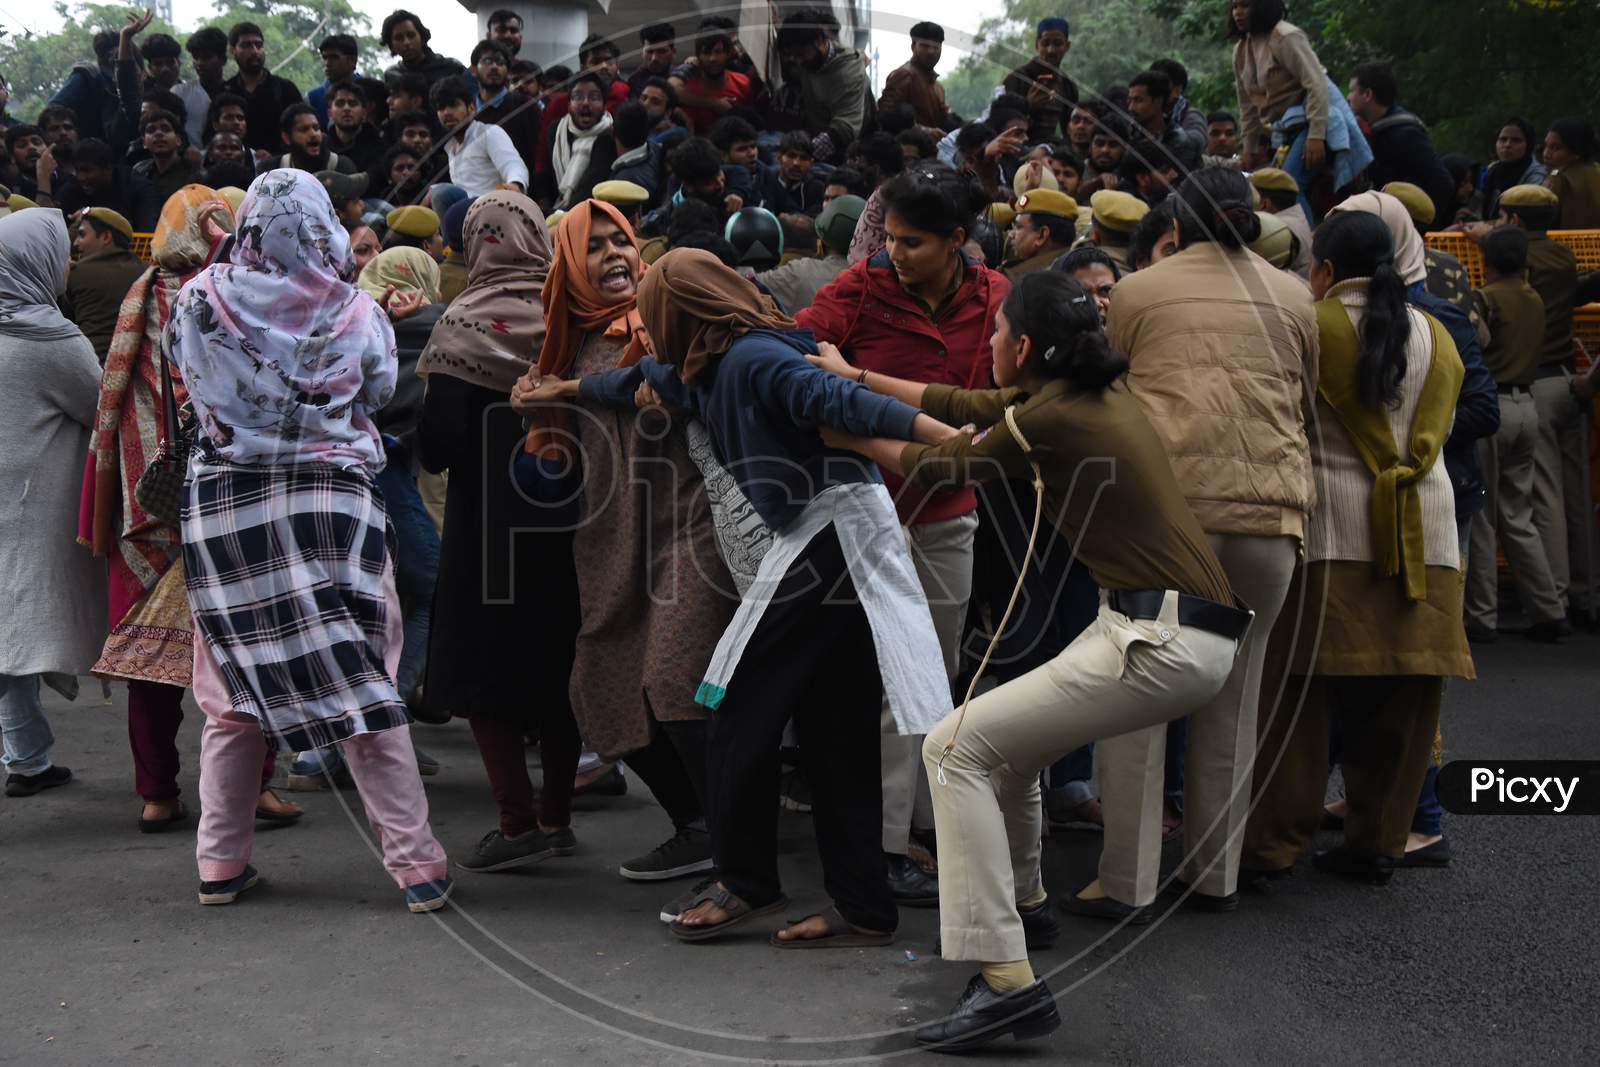 Protest against CAA+NRC & Police brutality on students in New Delhi.